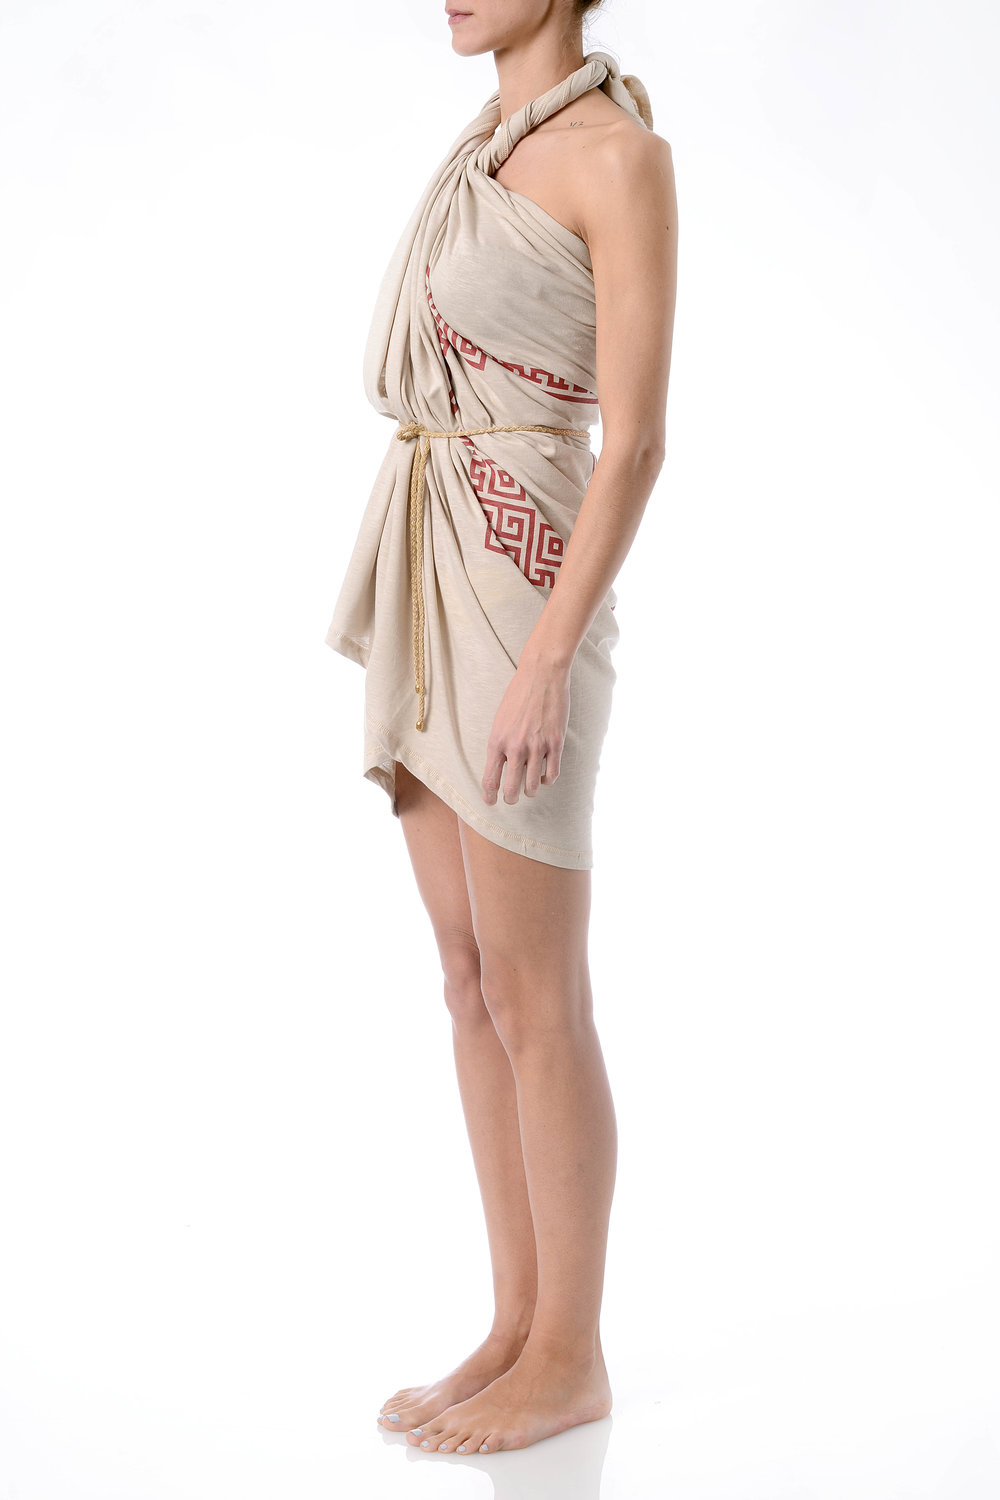 meander-bordeaux-on-beige-cotton-wraped-around-the-neck-side.jpg